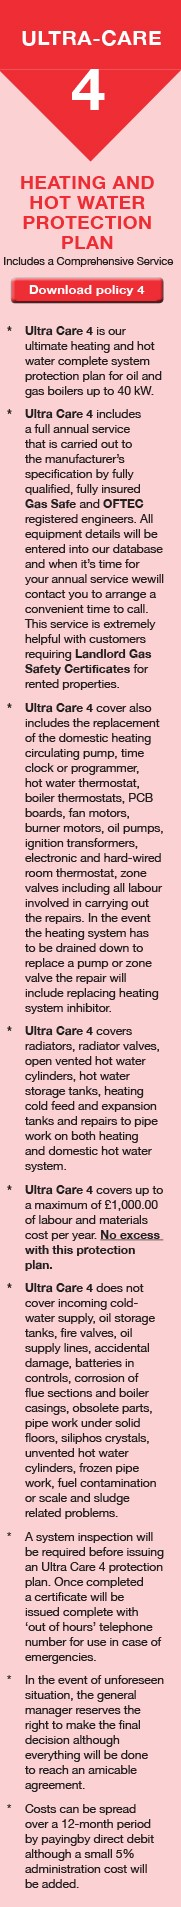 Hot Water Protection Plan Trowbridge